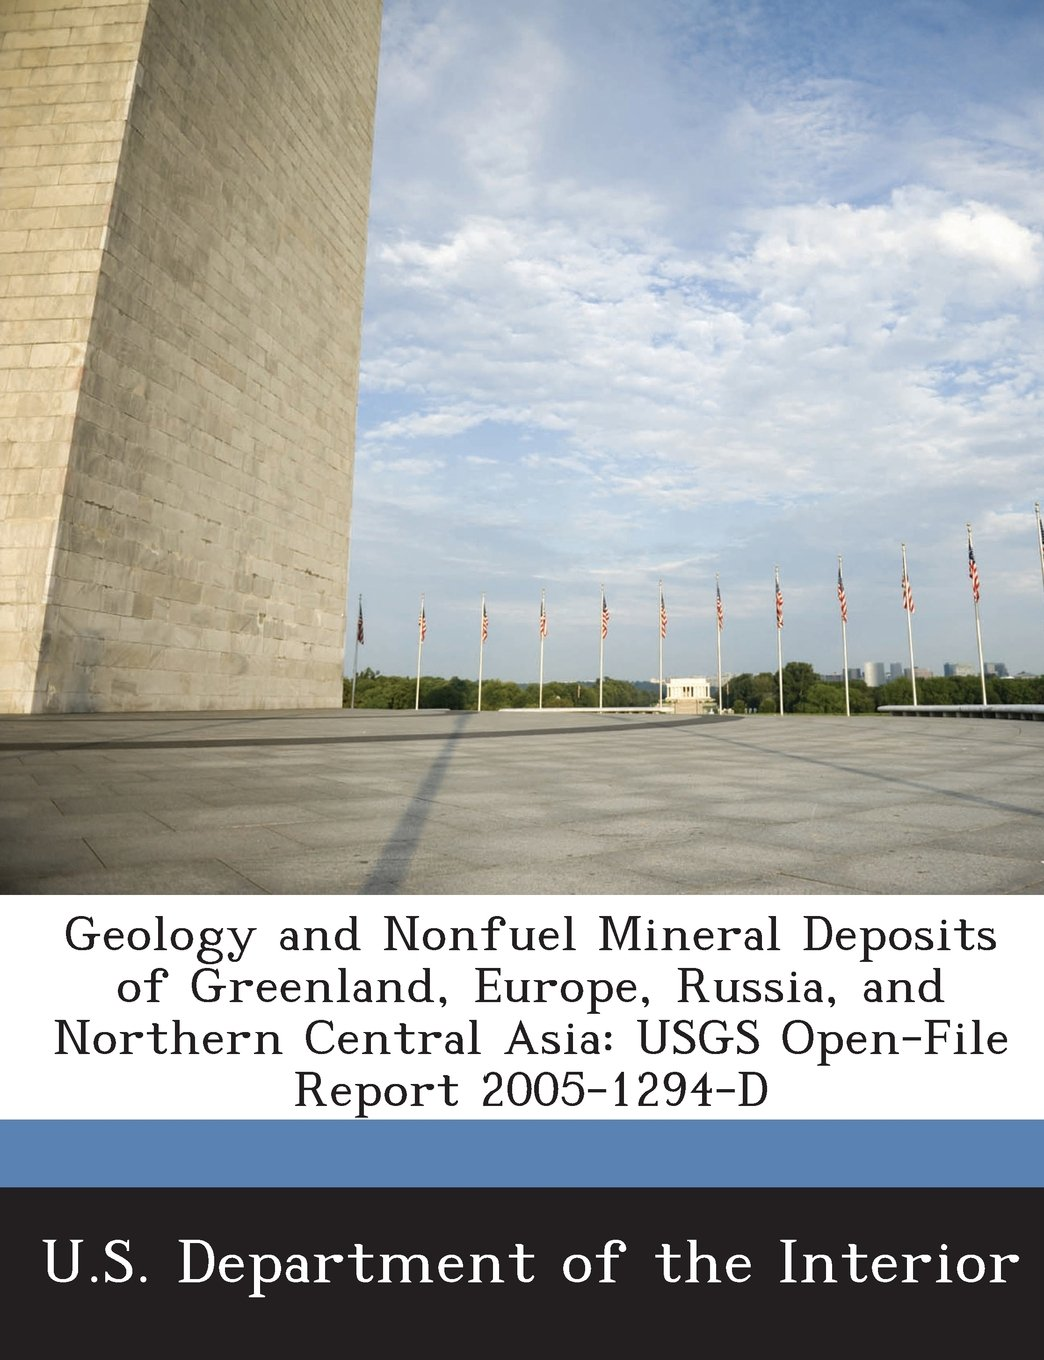 Geology and Nonfuel Mineral Deposits of Greenland, Europe, Russia, and Northern Central Asia: USGS Open-File Report 2005-1294-D pdf